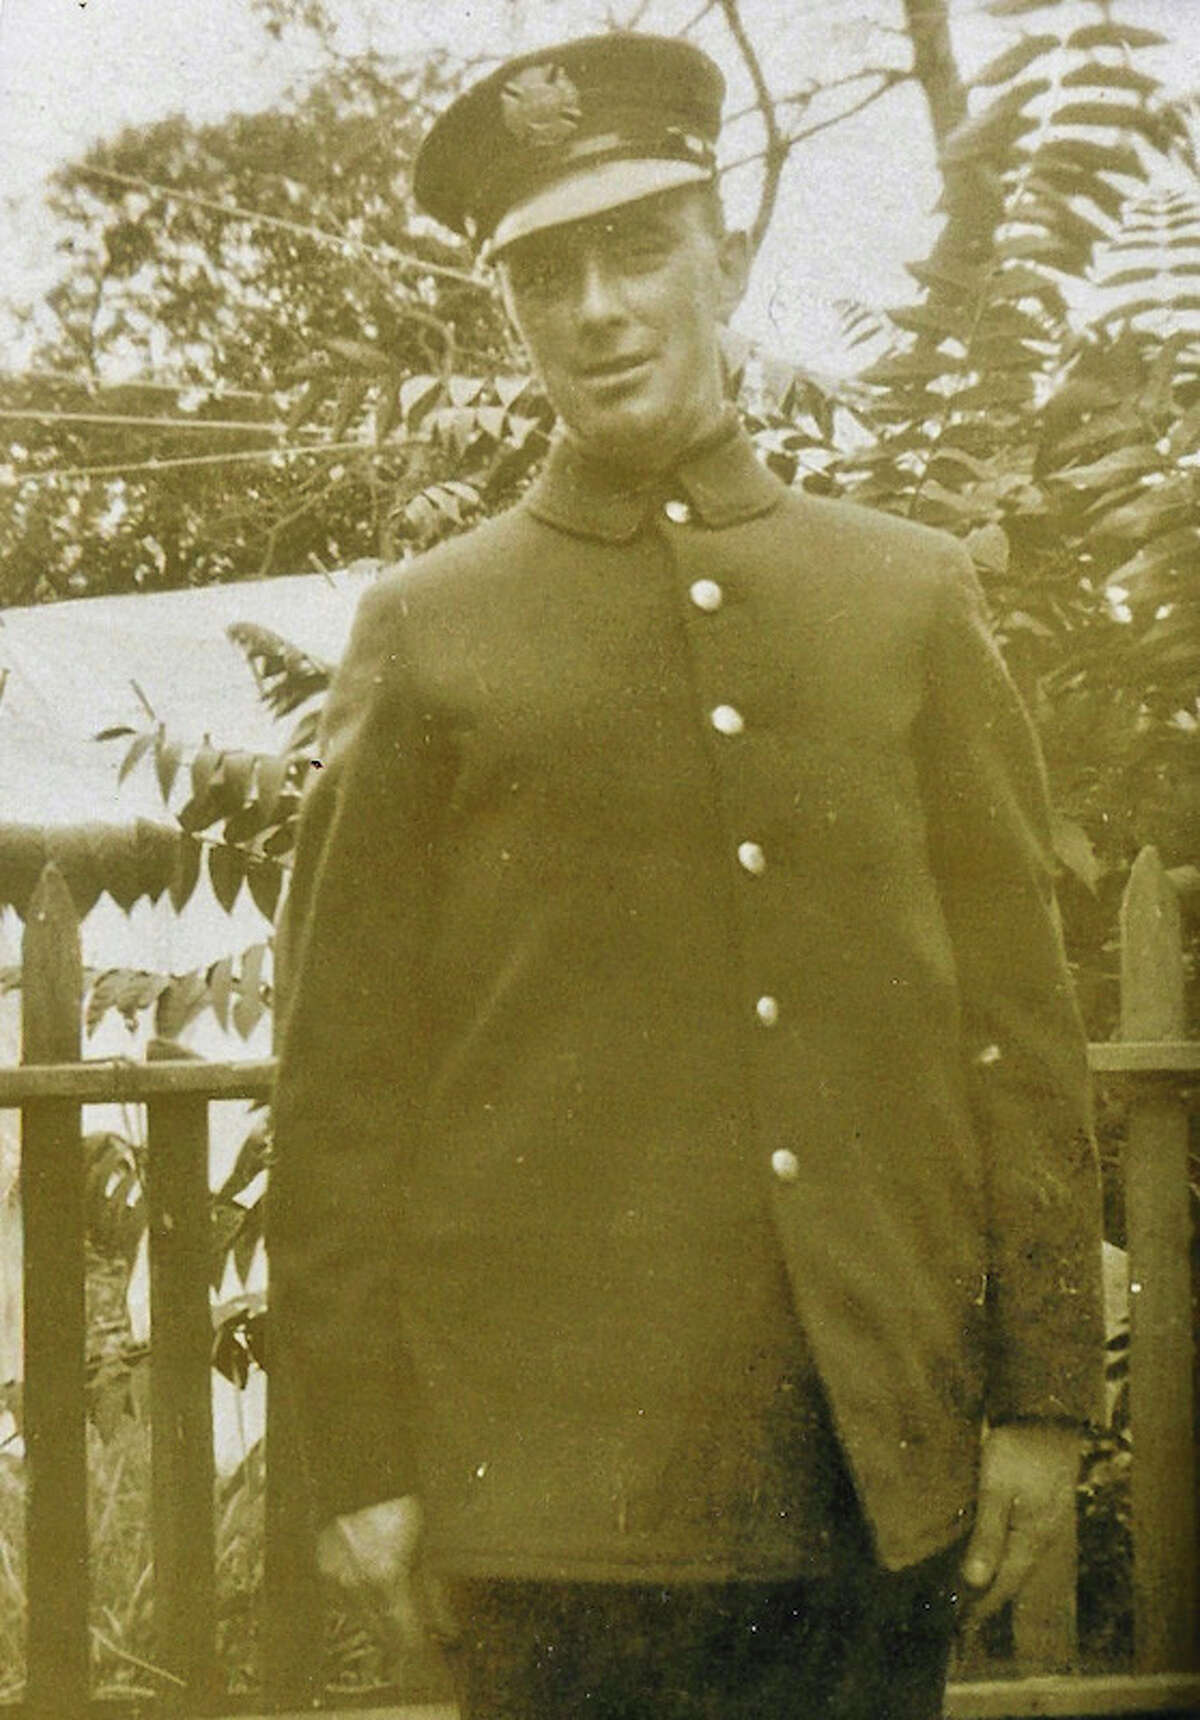 This undated photo provided by Arthur O'Brien shows his grandfather Thomas O'Brien in his fireman's uniform after he joined the FDNY in 1917. O'Brien's heirs say their grandfather was found dead in his firehouse bunk hours after suffering a six-inch skull fracture at a Manhattan fire in 1935 and should be honored as a